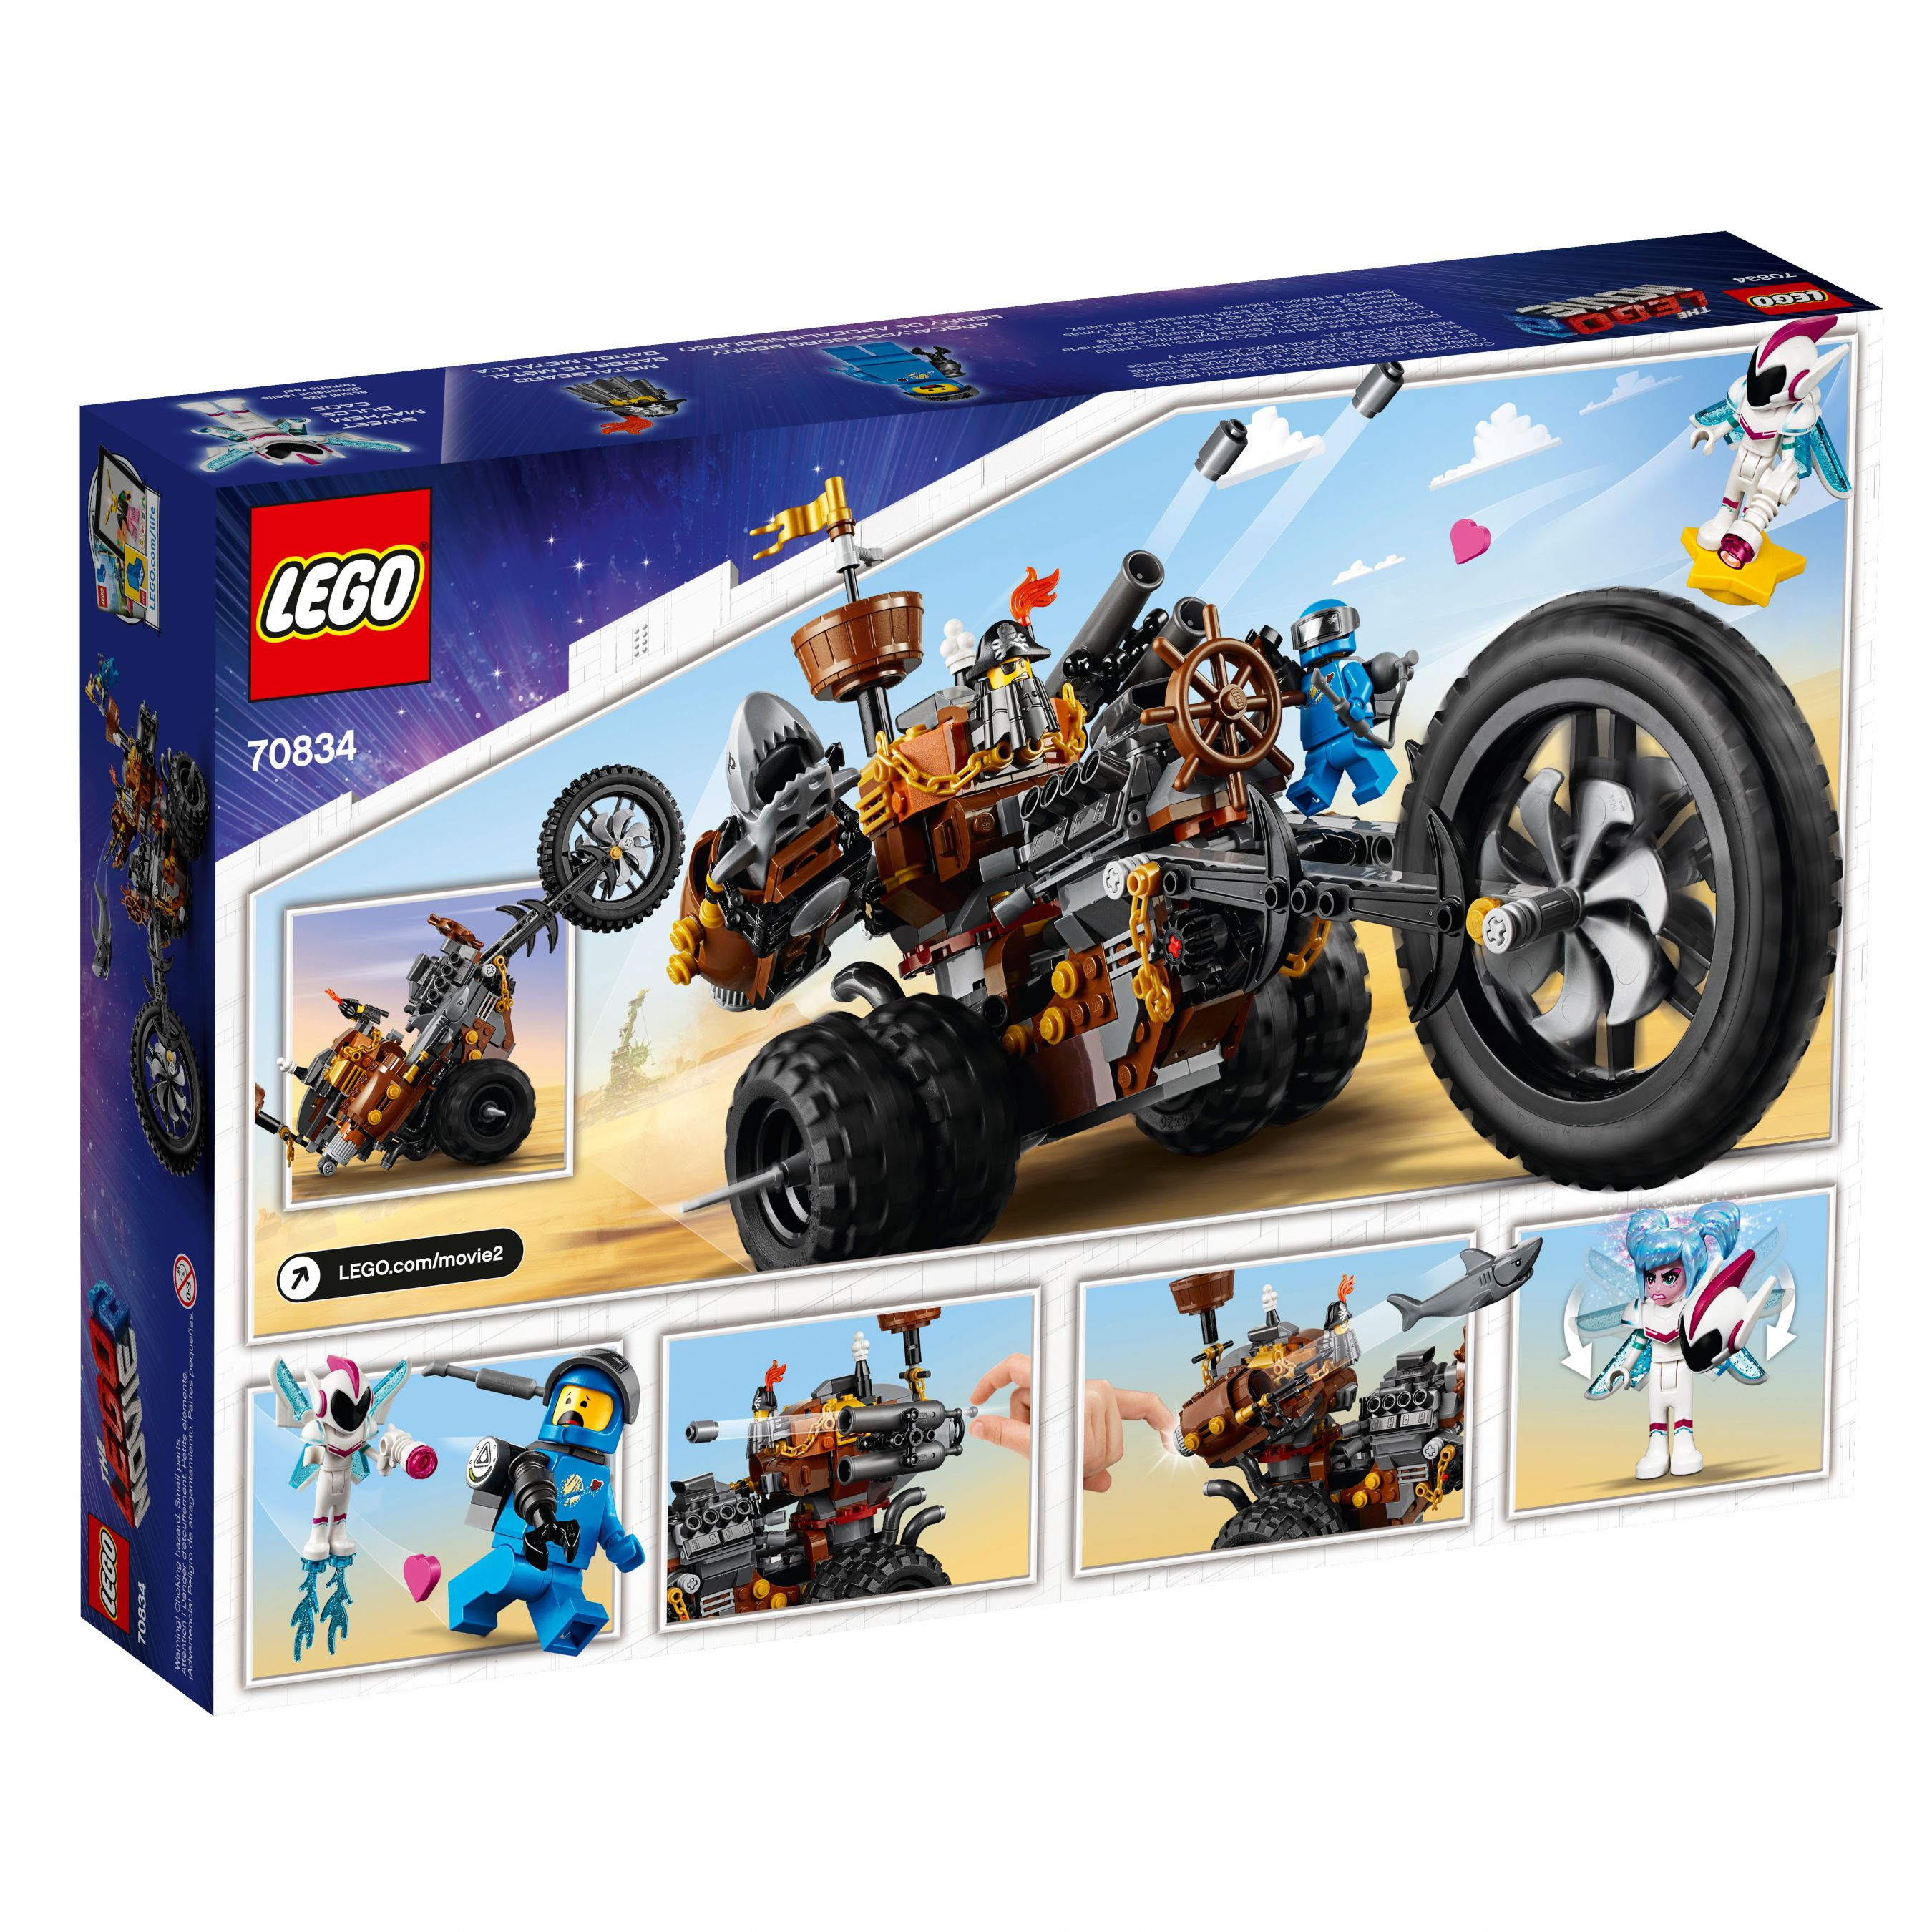 LEGO The LEGO Movie 2 70834 Eisenbarts Heavy-Metal-Trike! LEGO_70834_alt4.jpg